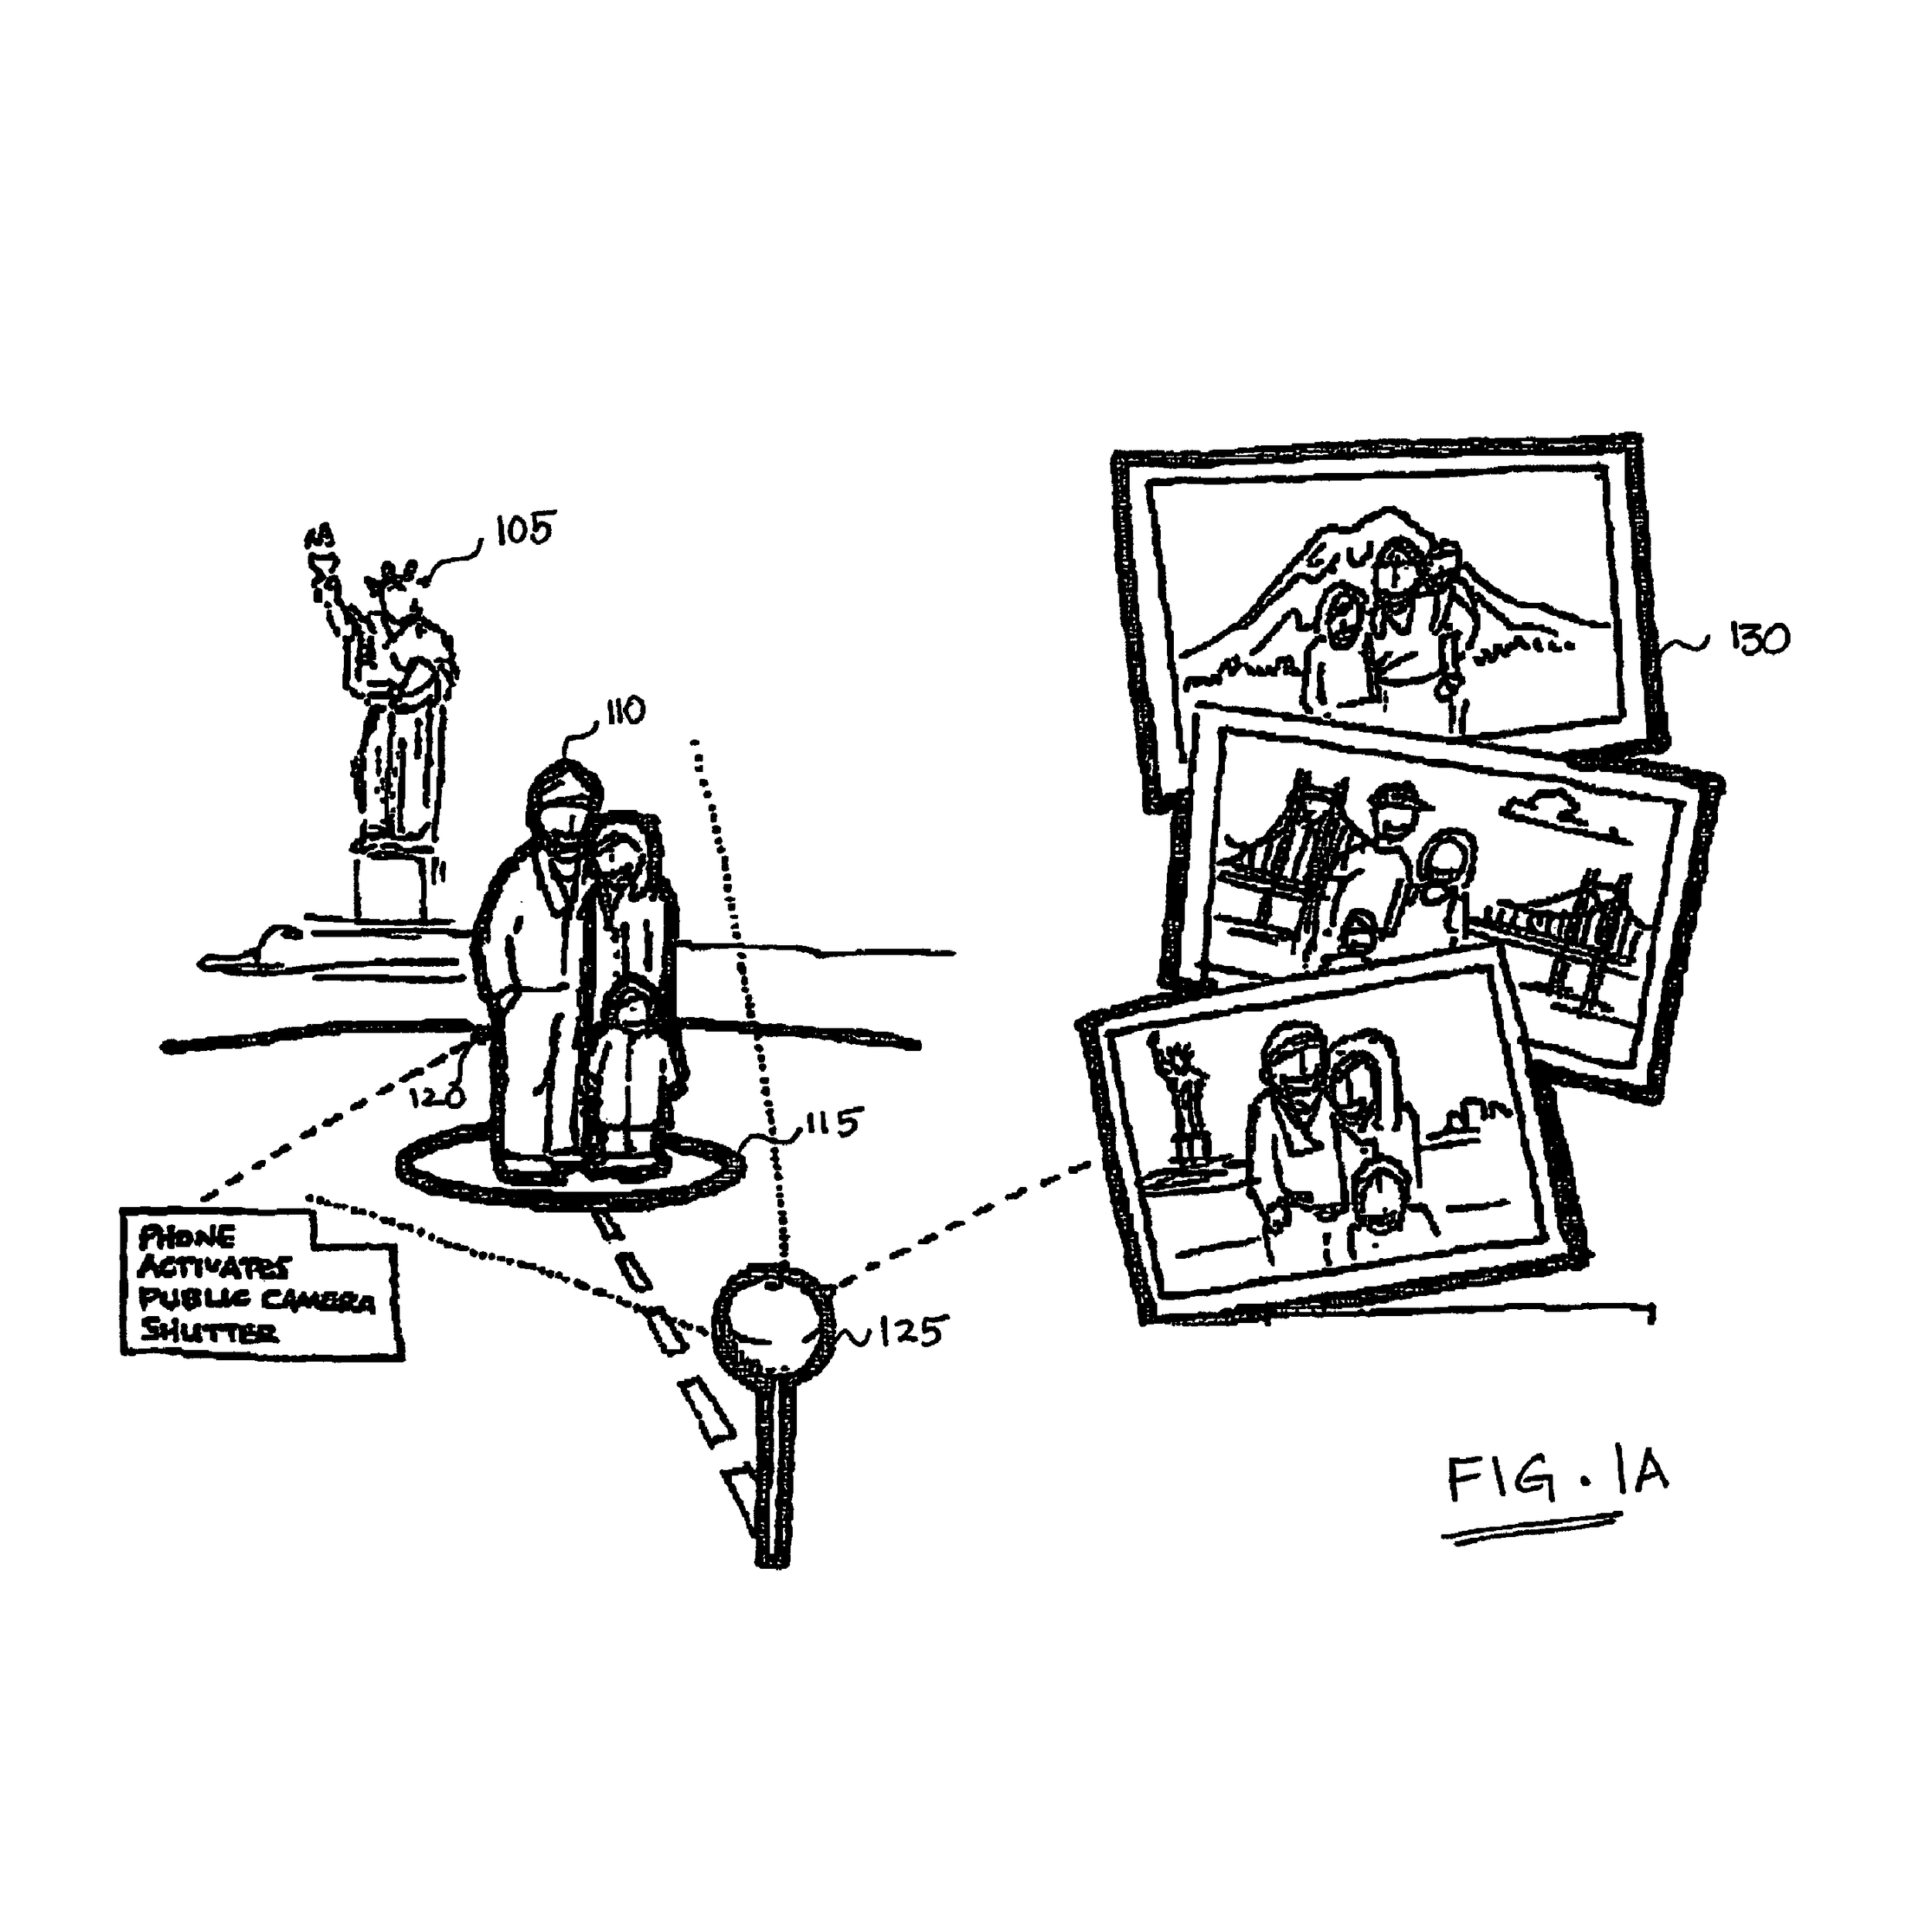 Camera pod that captures images or video when triggered by a mobile device